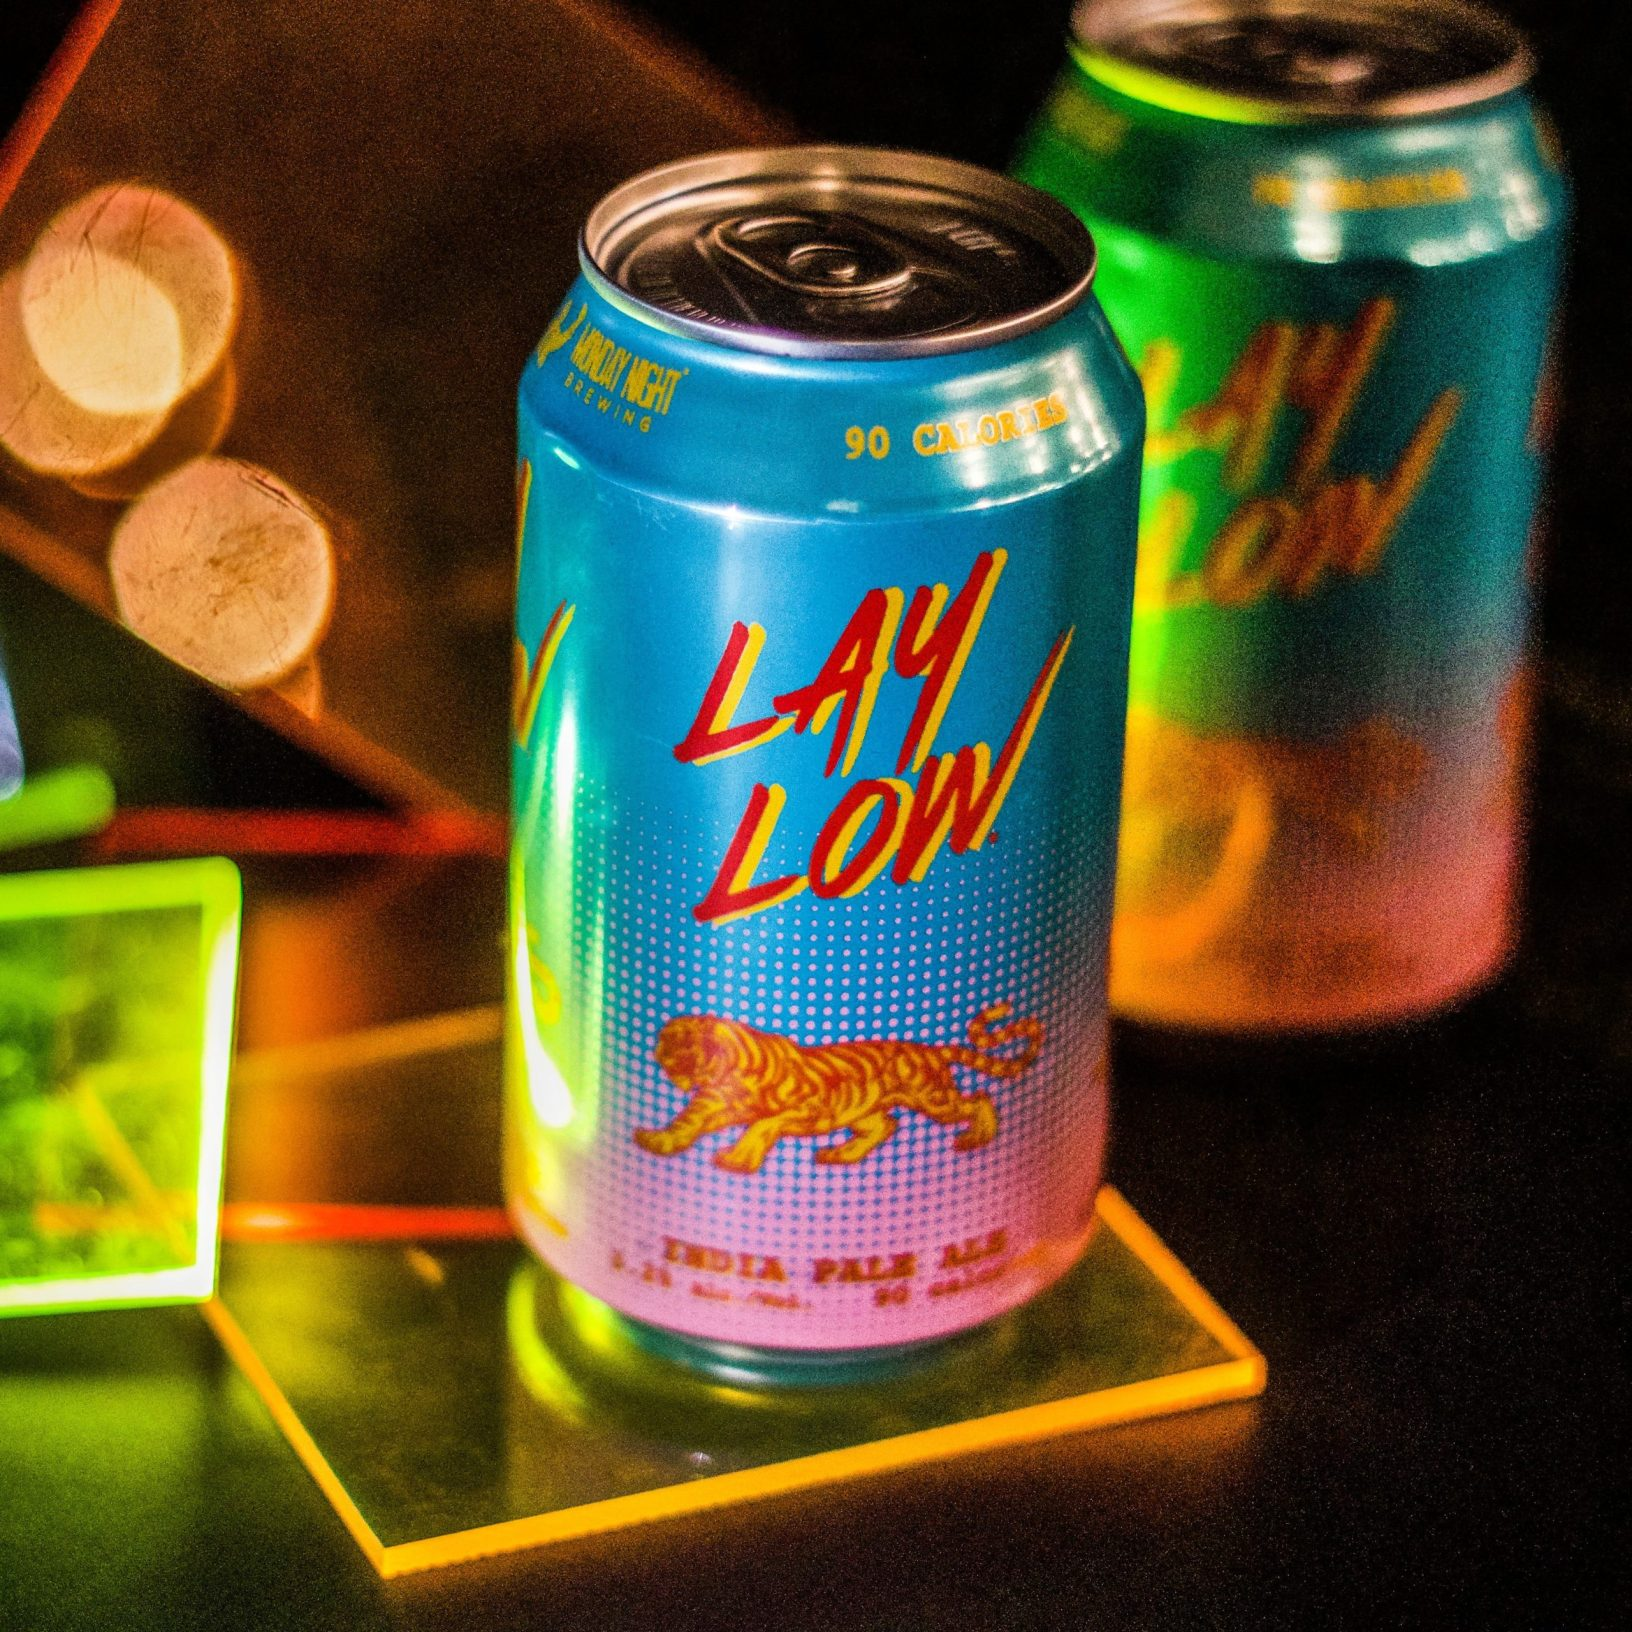 Slay IPA All Day With Lay Low